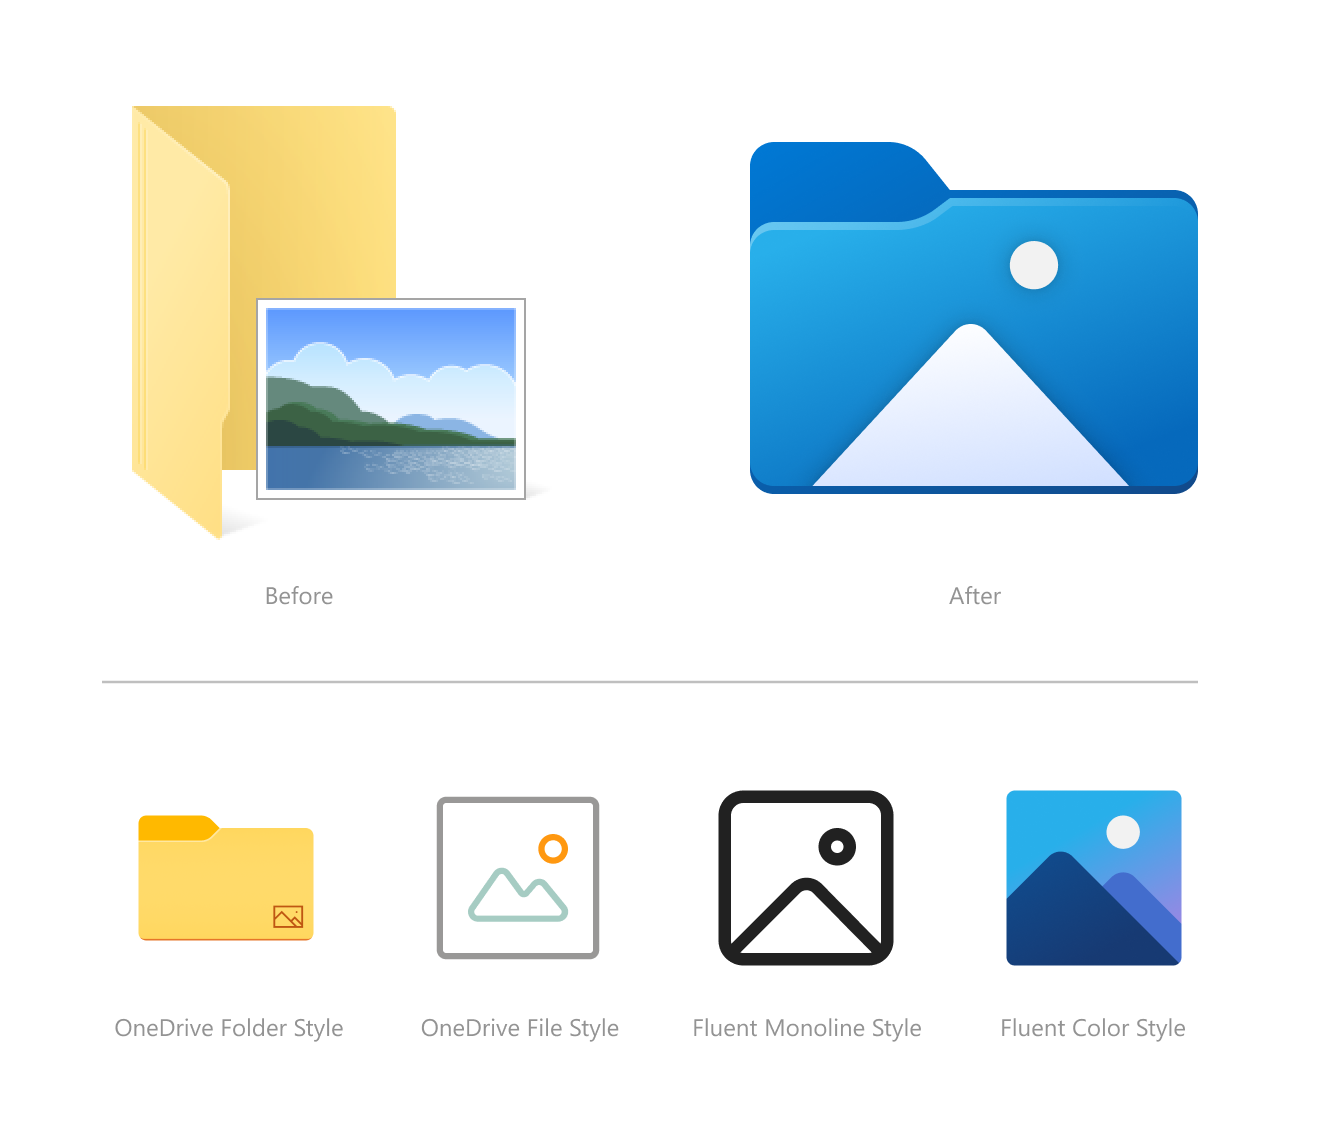 Before and after Photos icons in File Explorer.